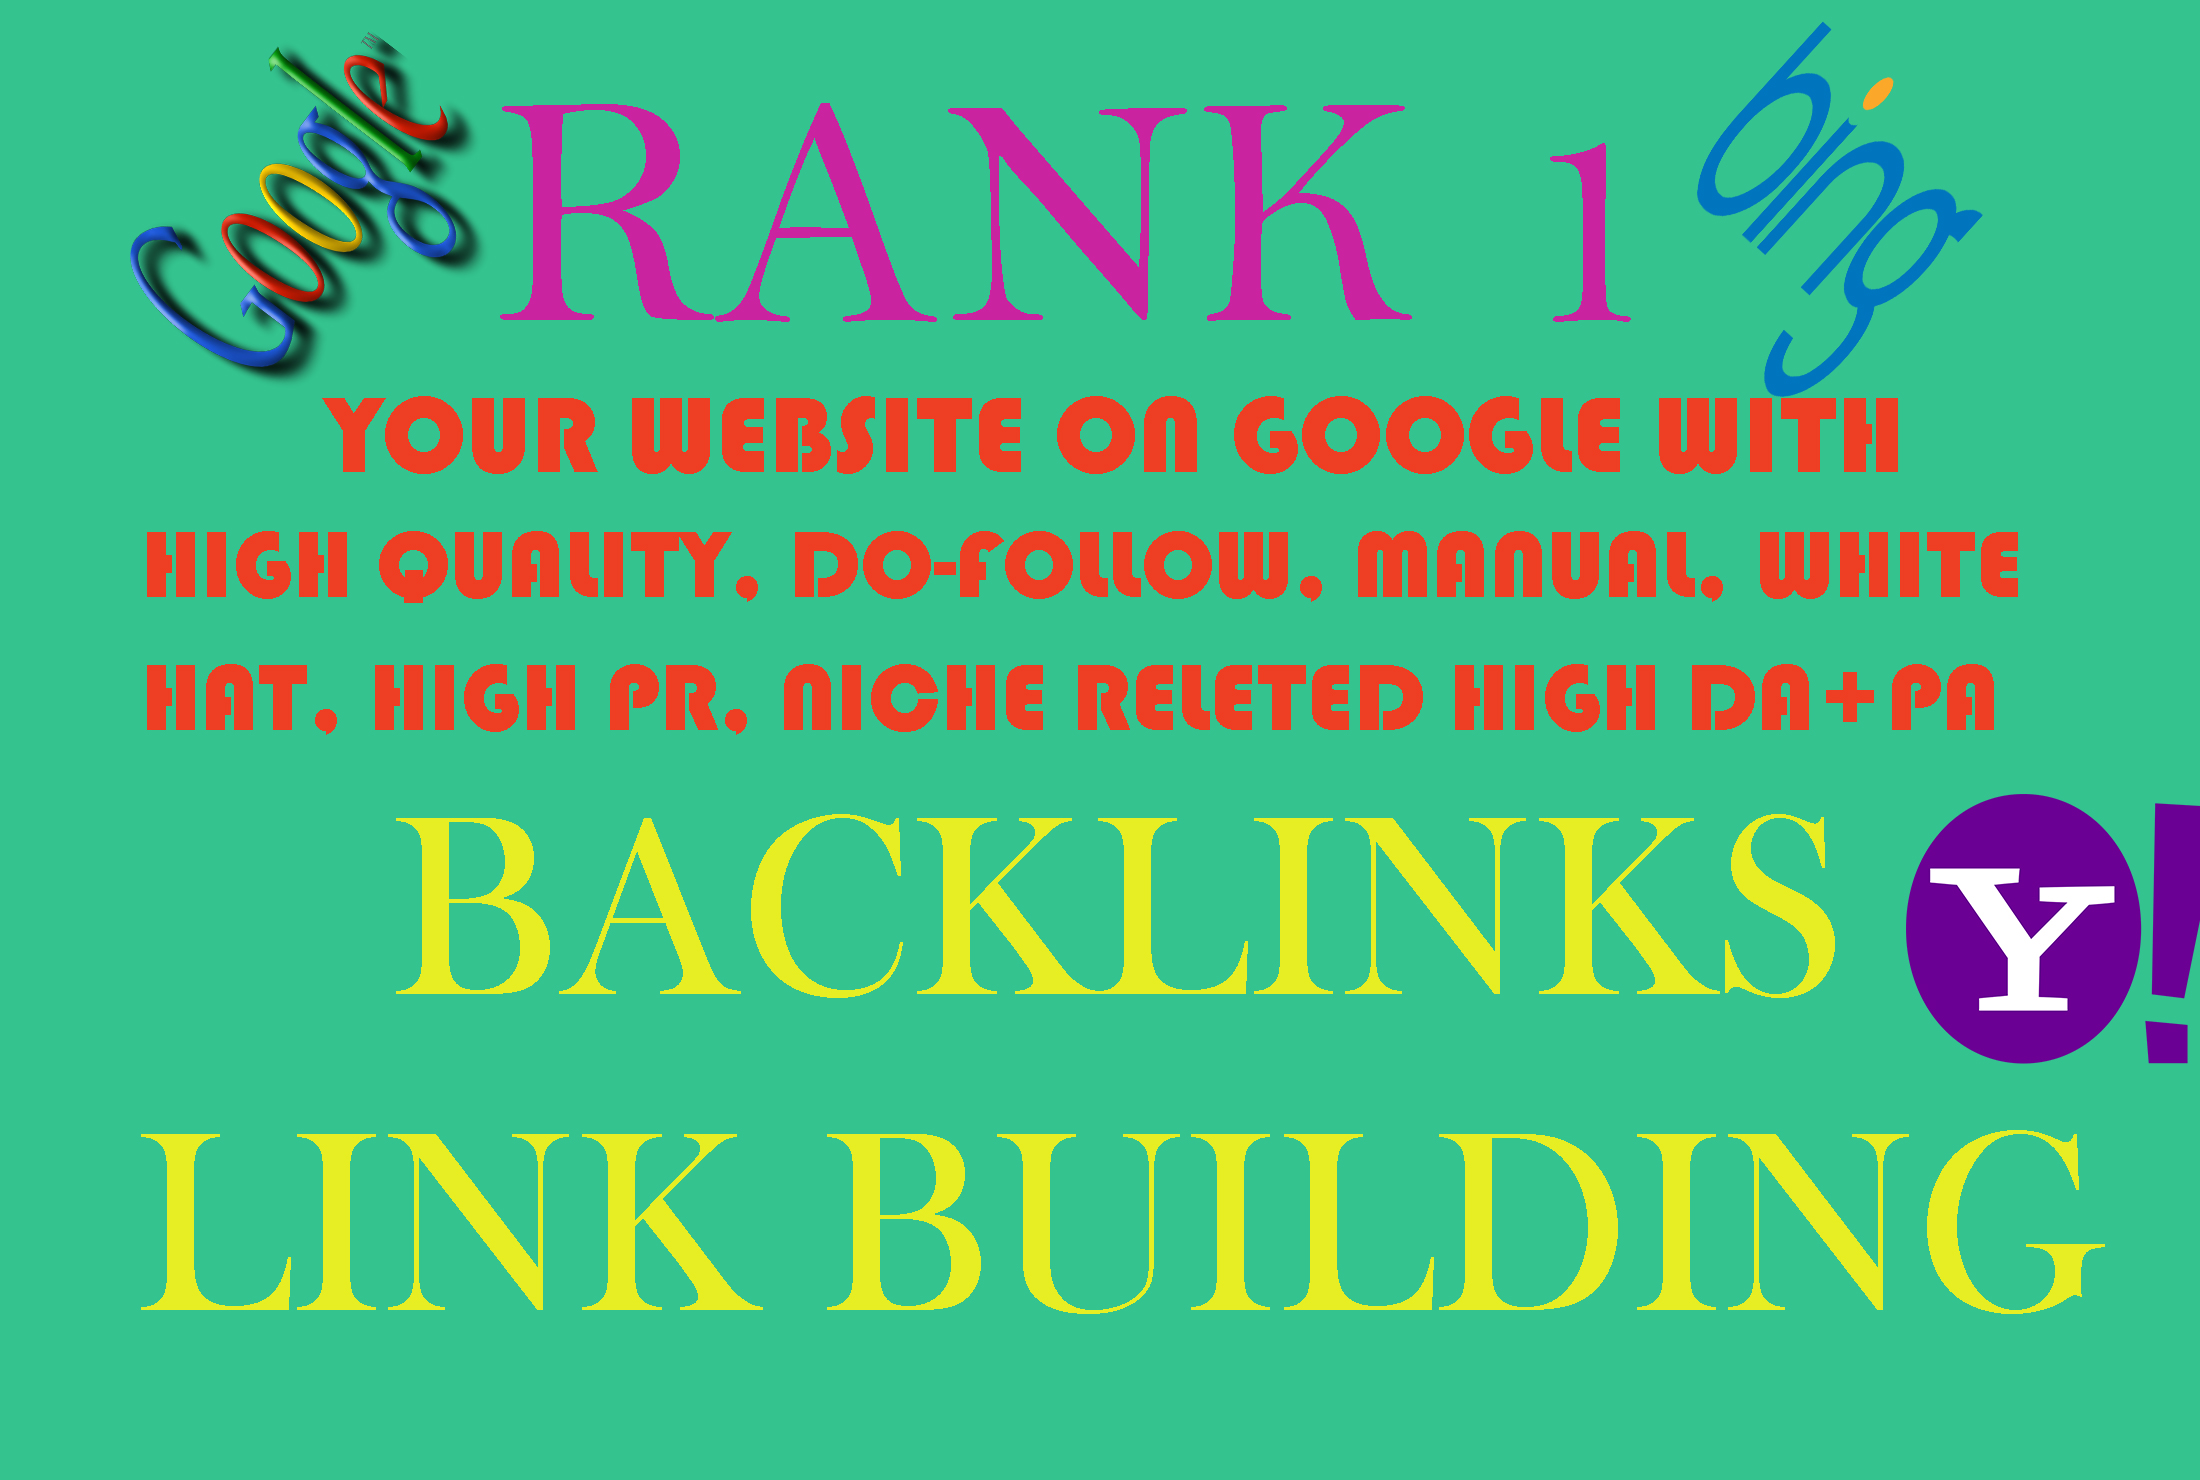 Do 50+  link building With high pr da pa quality do follow seo backlinks